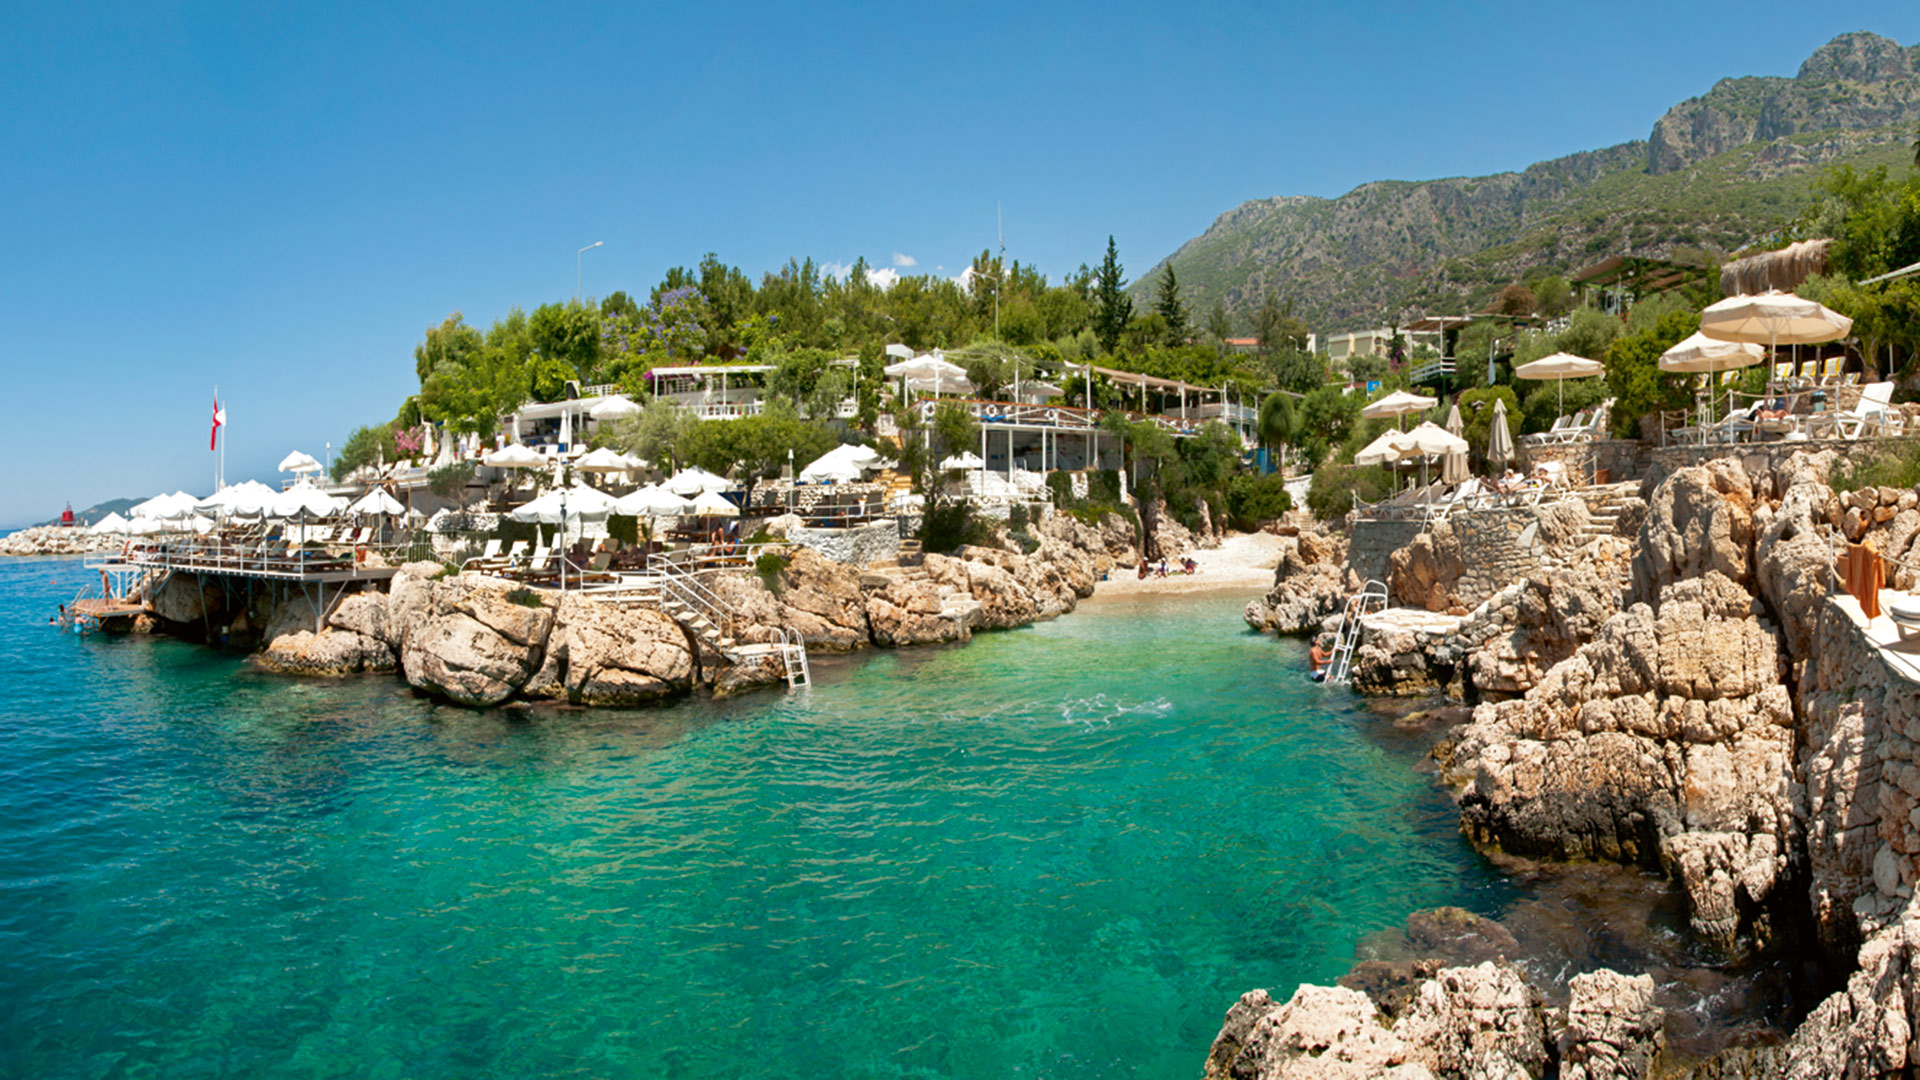 Kekova Turkey